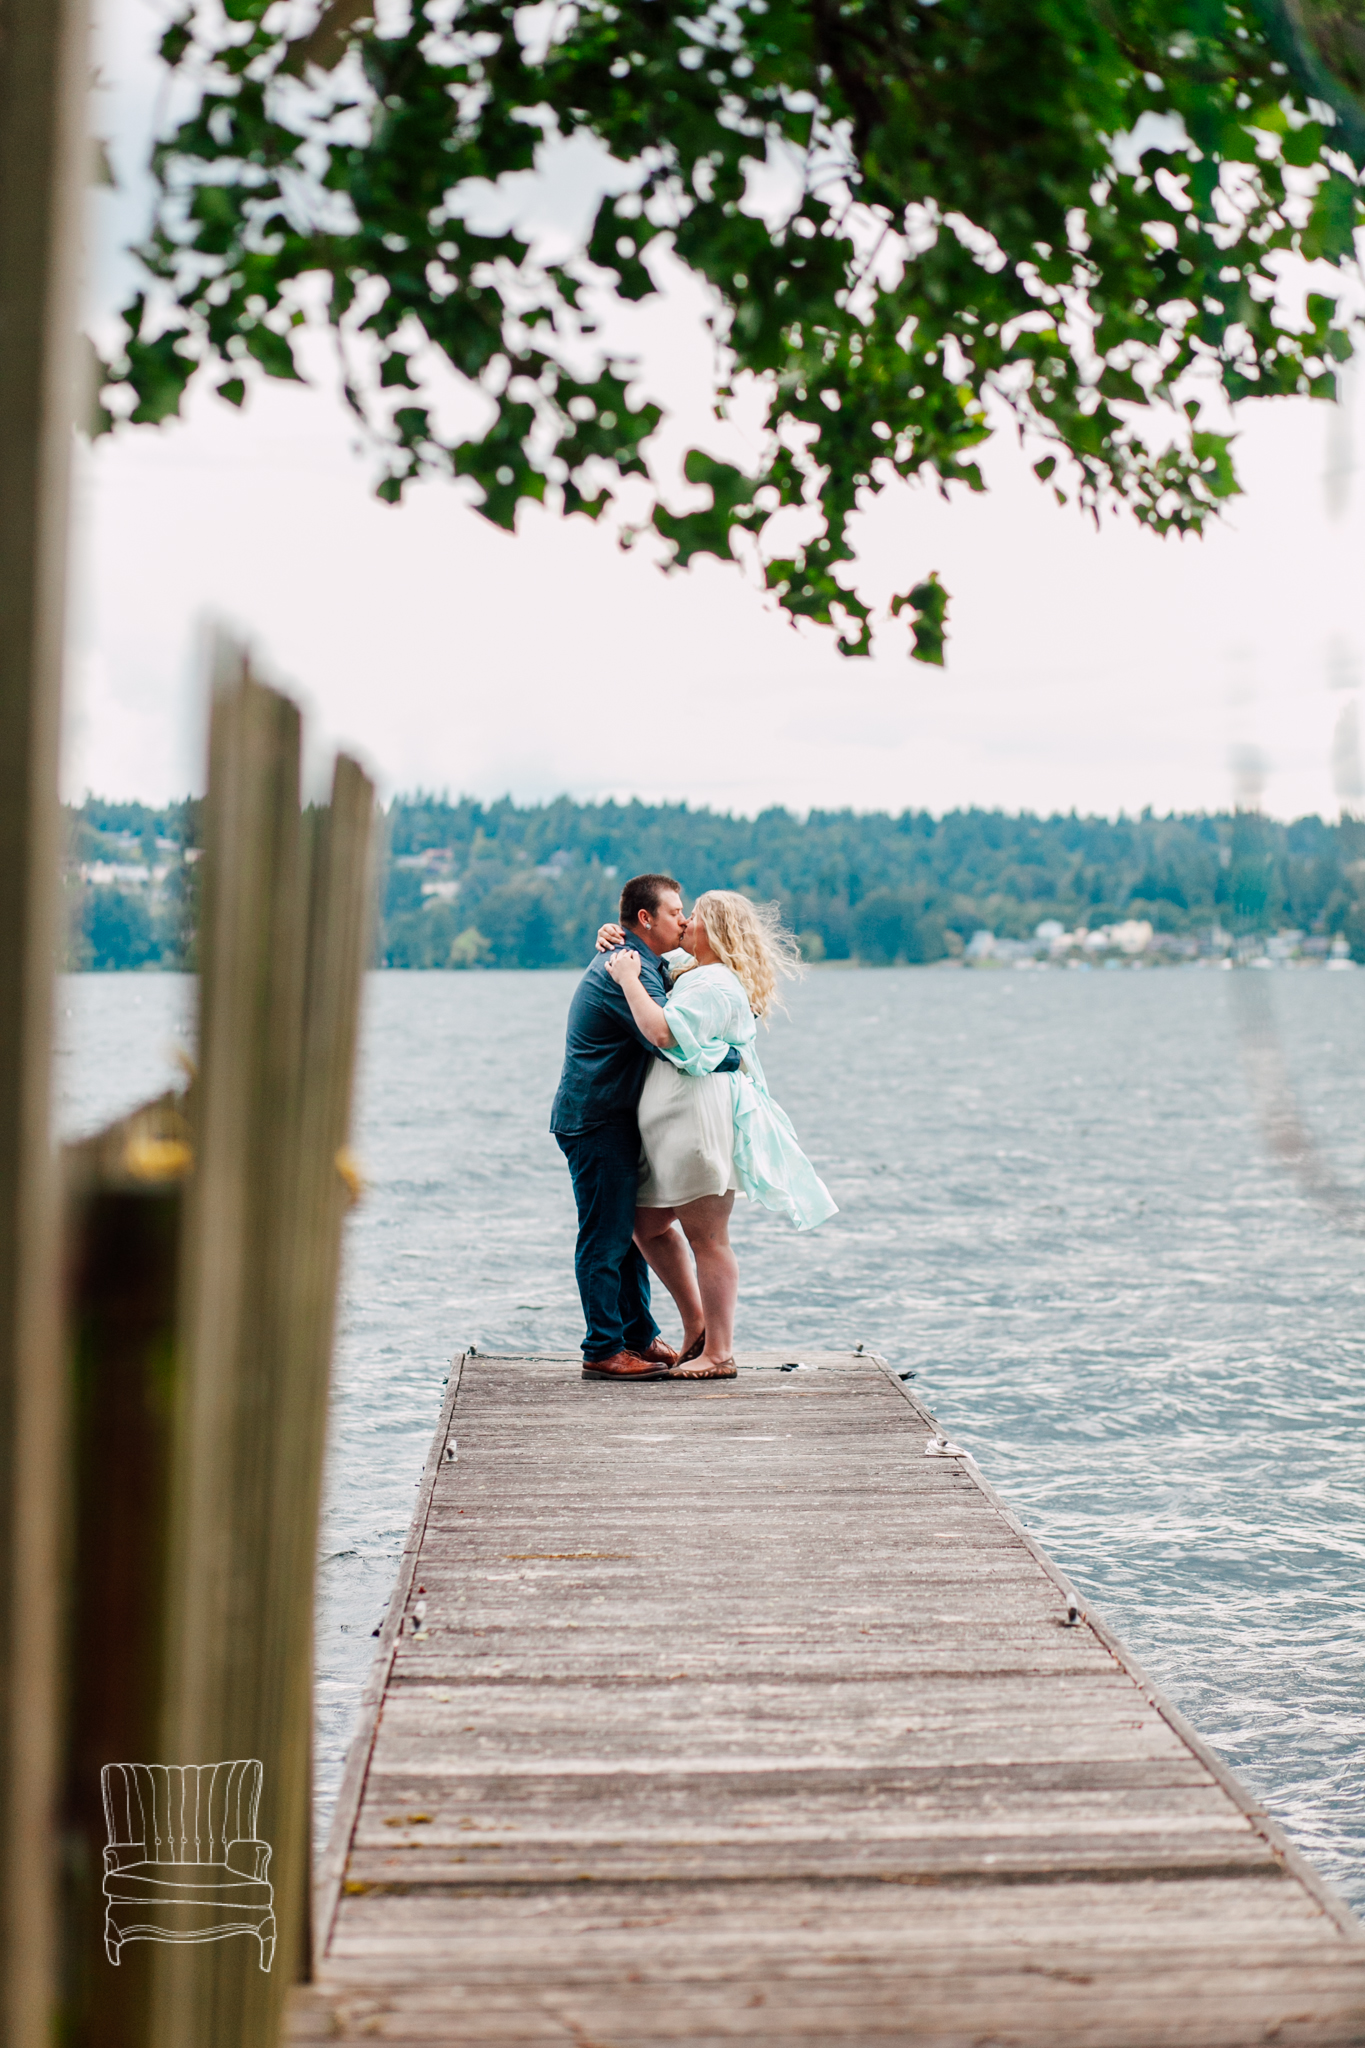 seattle-engagement-photographer-lake-washington-katheryn-moran-ashley-zach-16.jpg